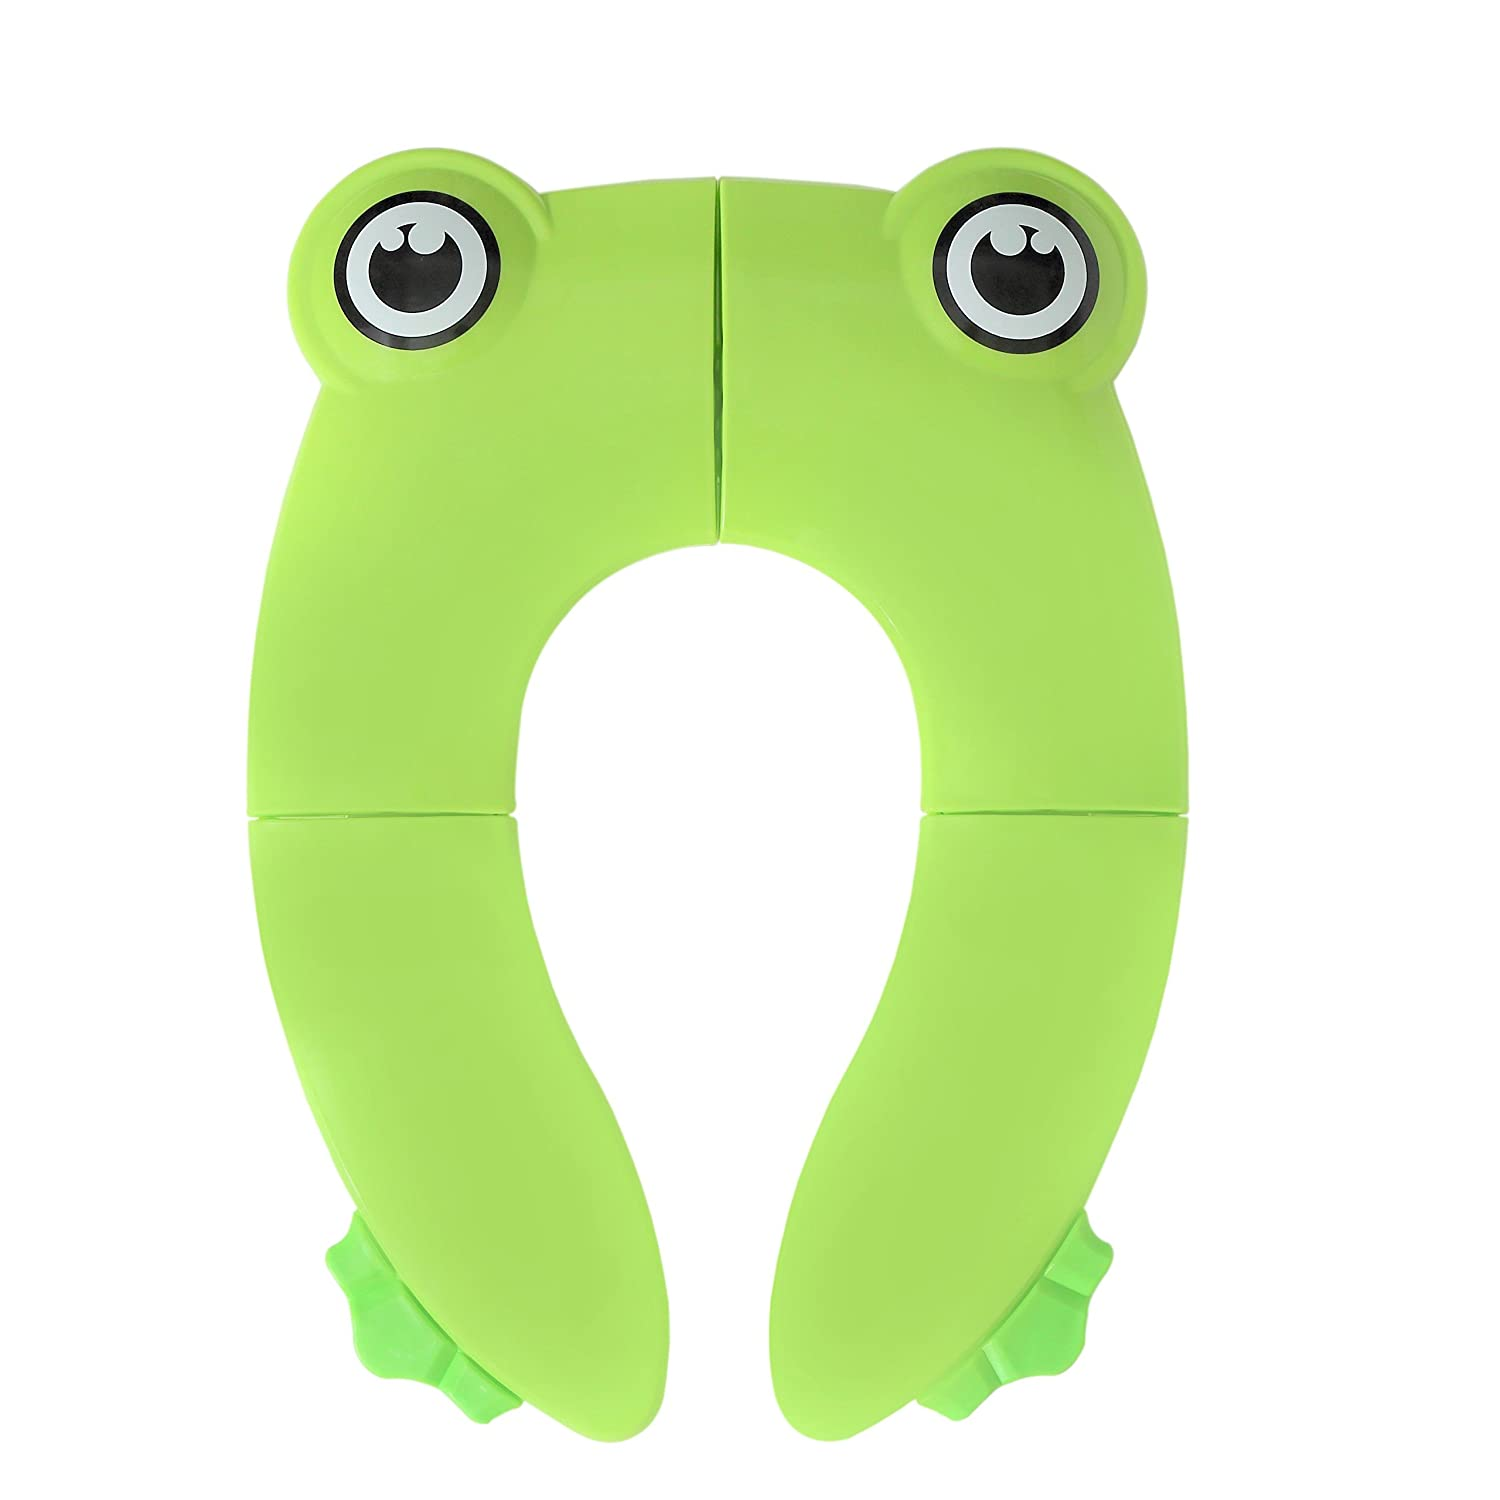 Portable Reusable with Non-Slip Silicone Pads and Carry Bag for Babies Kids Travel AID Folding Portable Potty Training Toilet Seat Cover Liner Toddlers